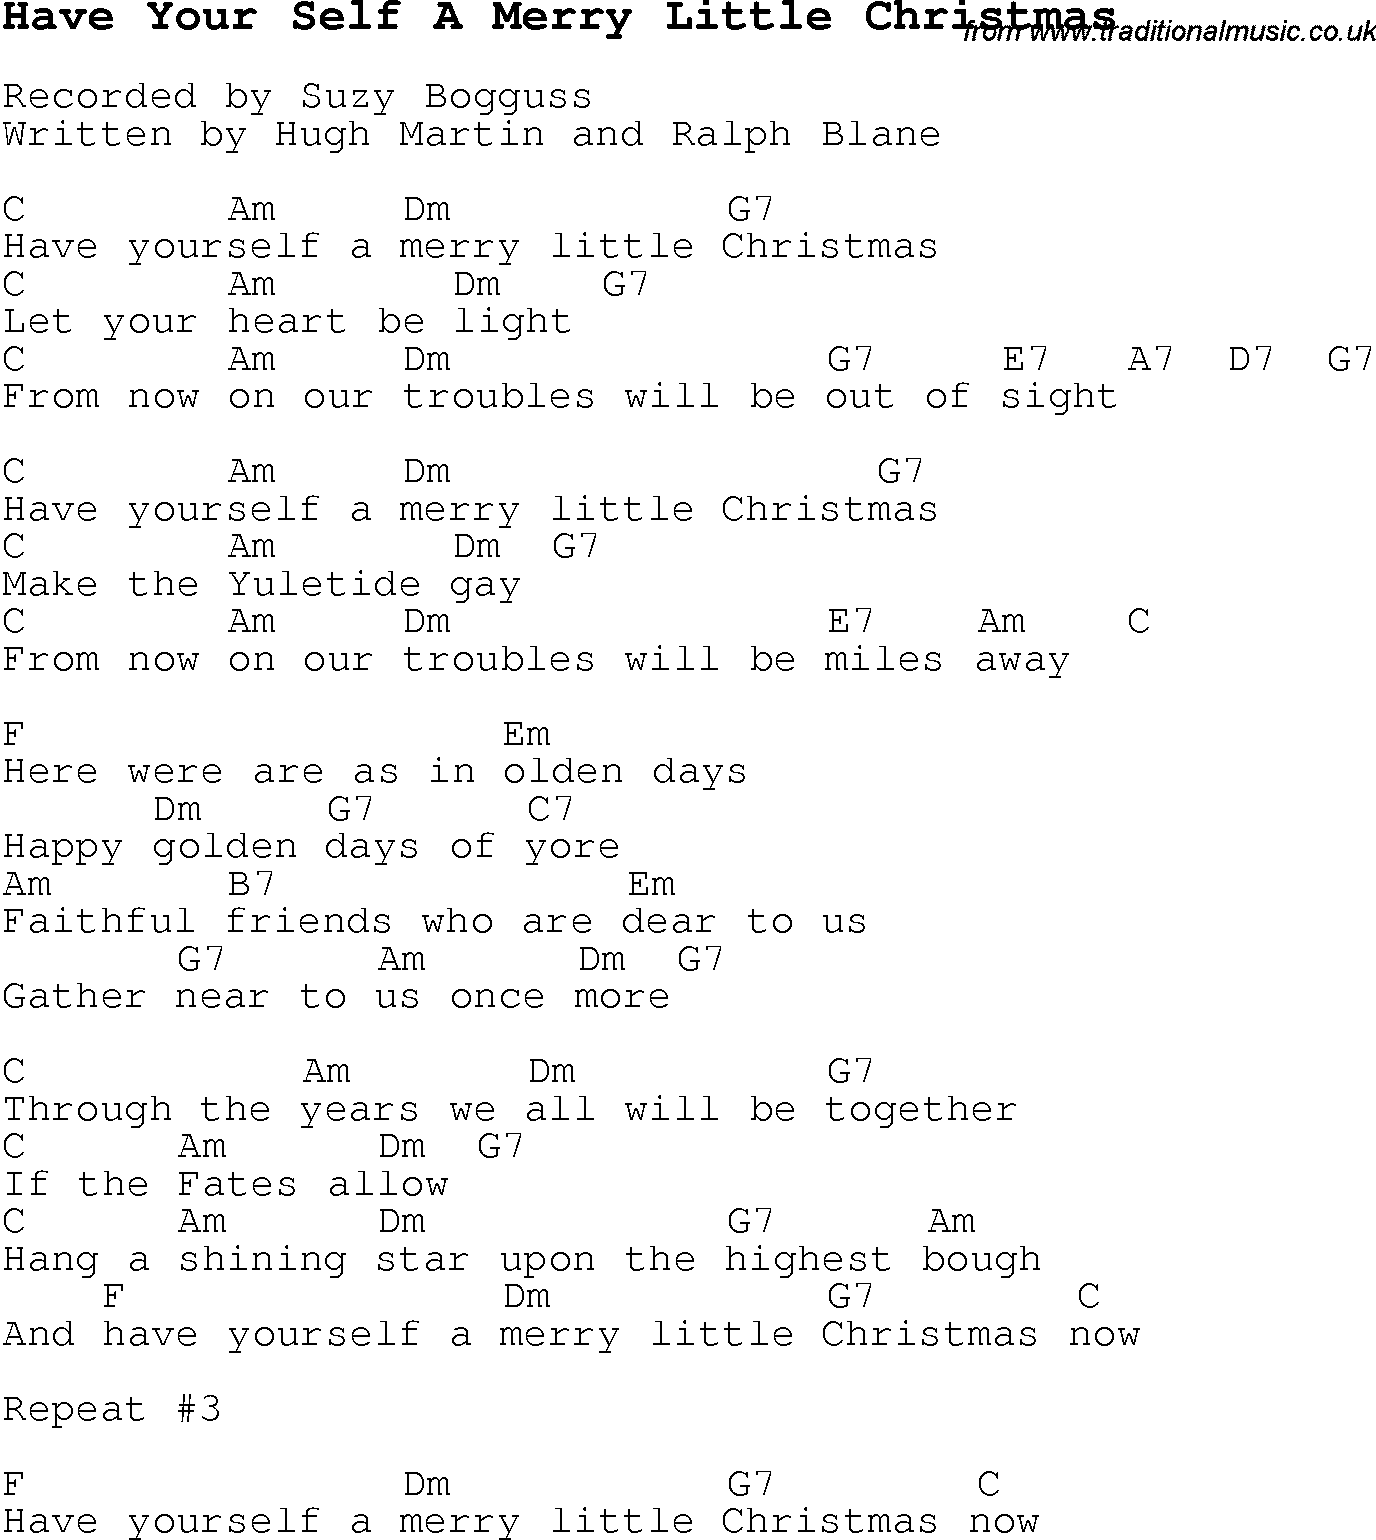 Christmas Carol/Song lyrics with chords for Have Your Self A Merry Little Christmas